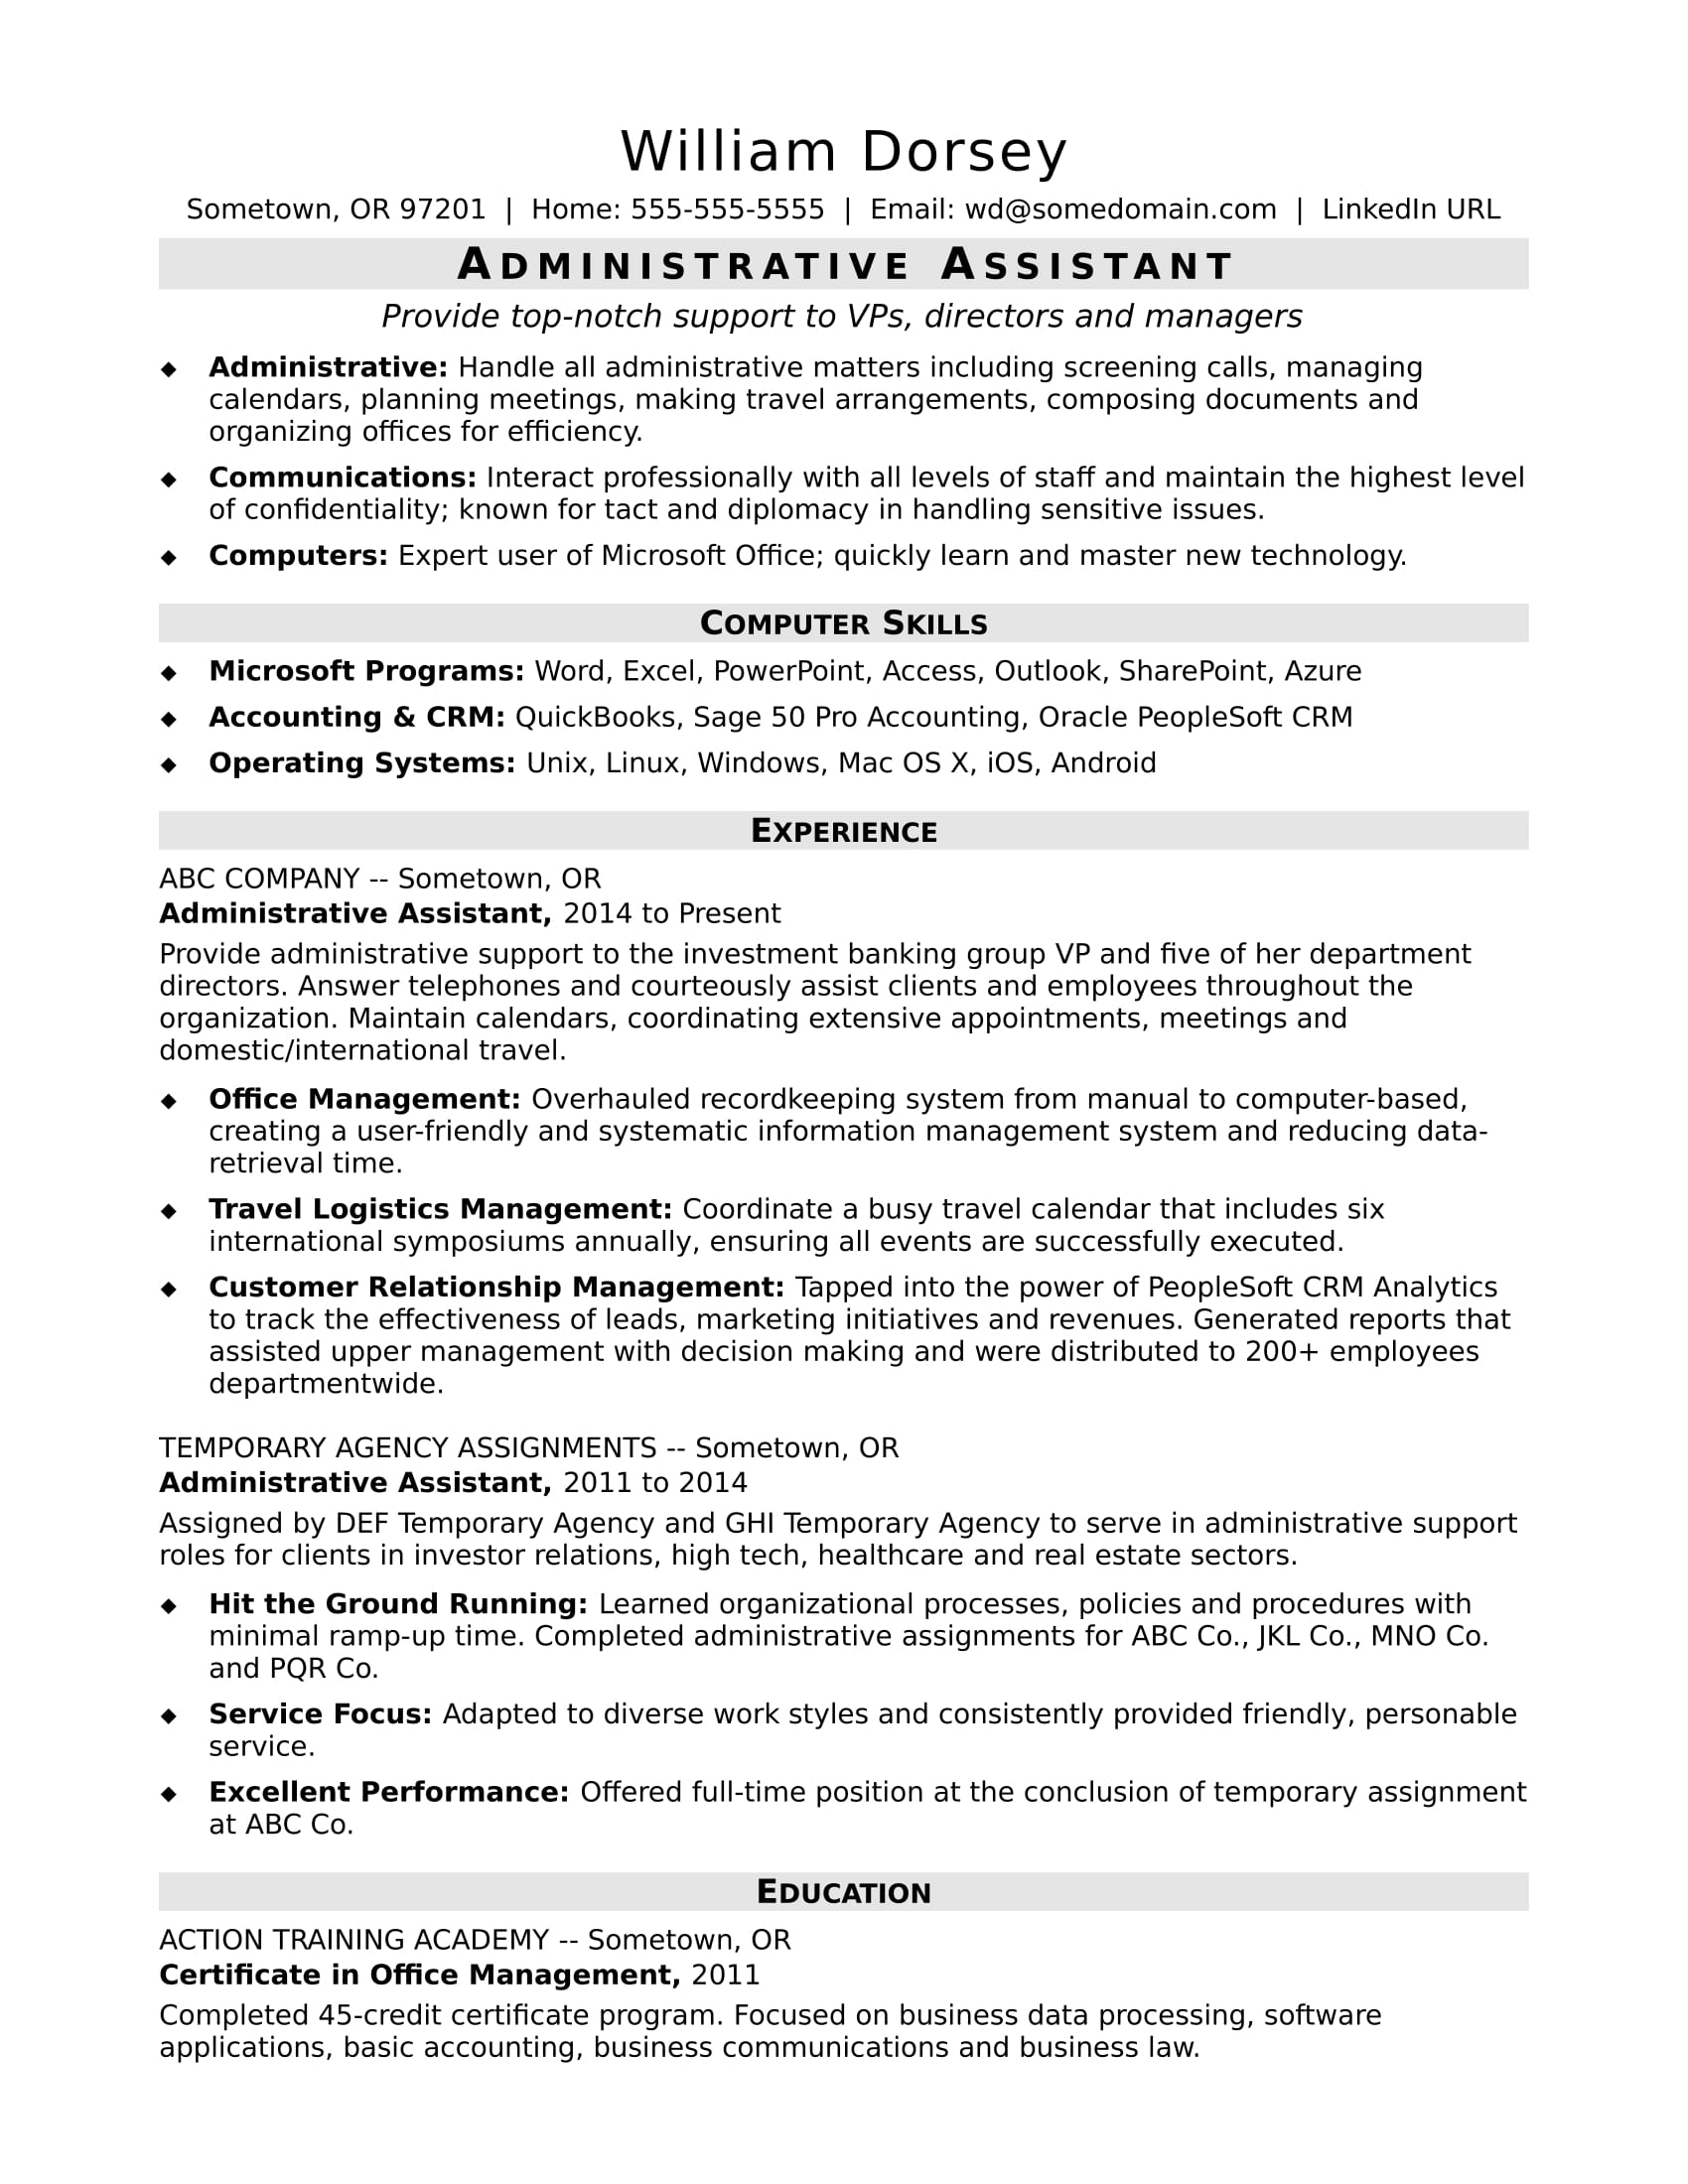 Sample Resume For A Midlevel Administrative Assistant  Resume Words For Skills